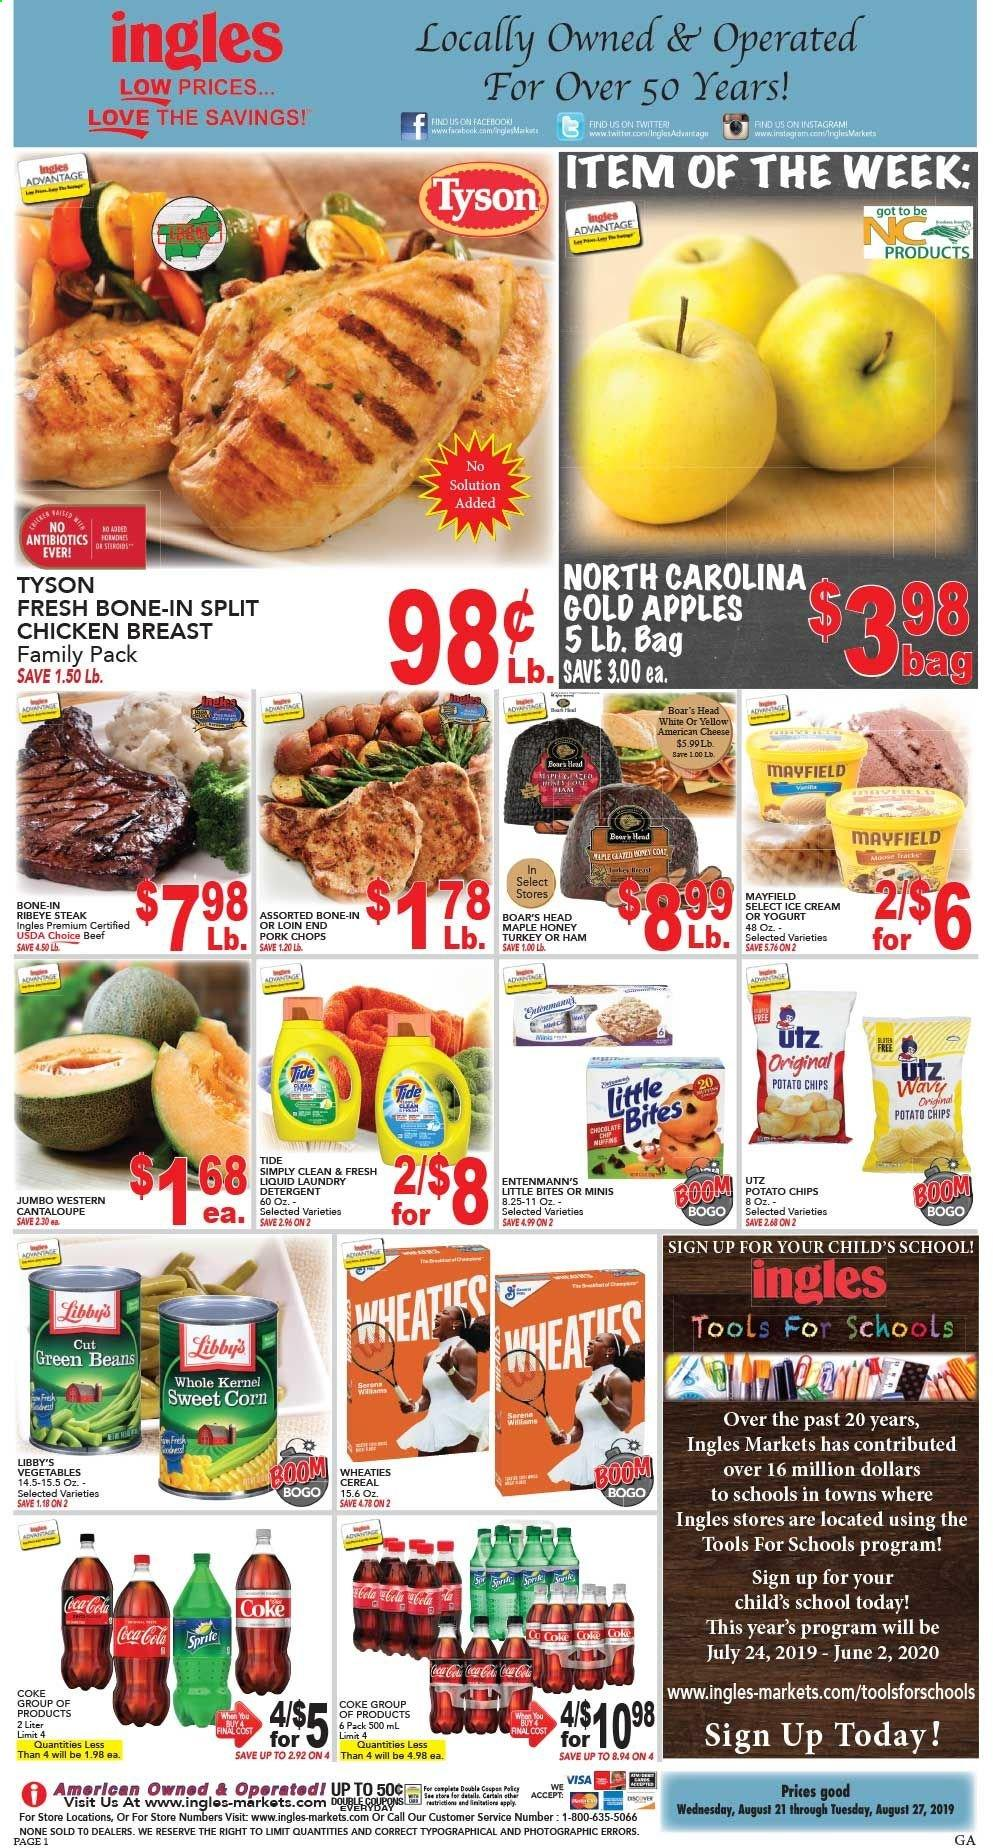 Ingles Flyer - 08.21.2019 - 08.27.2019 - Sales products - cantaloupe, corn, green beans, apples, ham, american cheese, cheese, ice cream, beans, potato chips, chips, cereals, honey, Coca-Cola, Sprite, turkey, chicken, chicken breast, beef meat, steak, pork chops, pork meat, detergent, Tide, tools. Page 1.